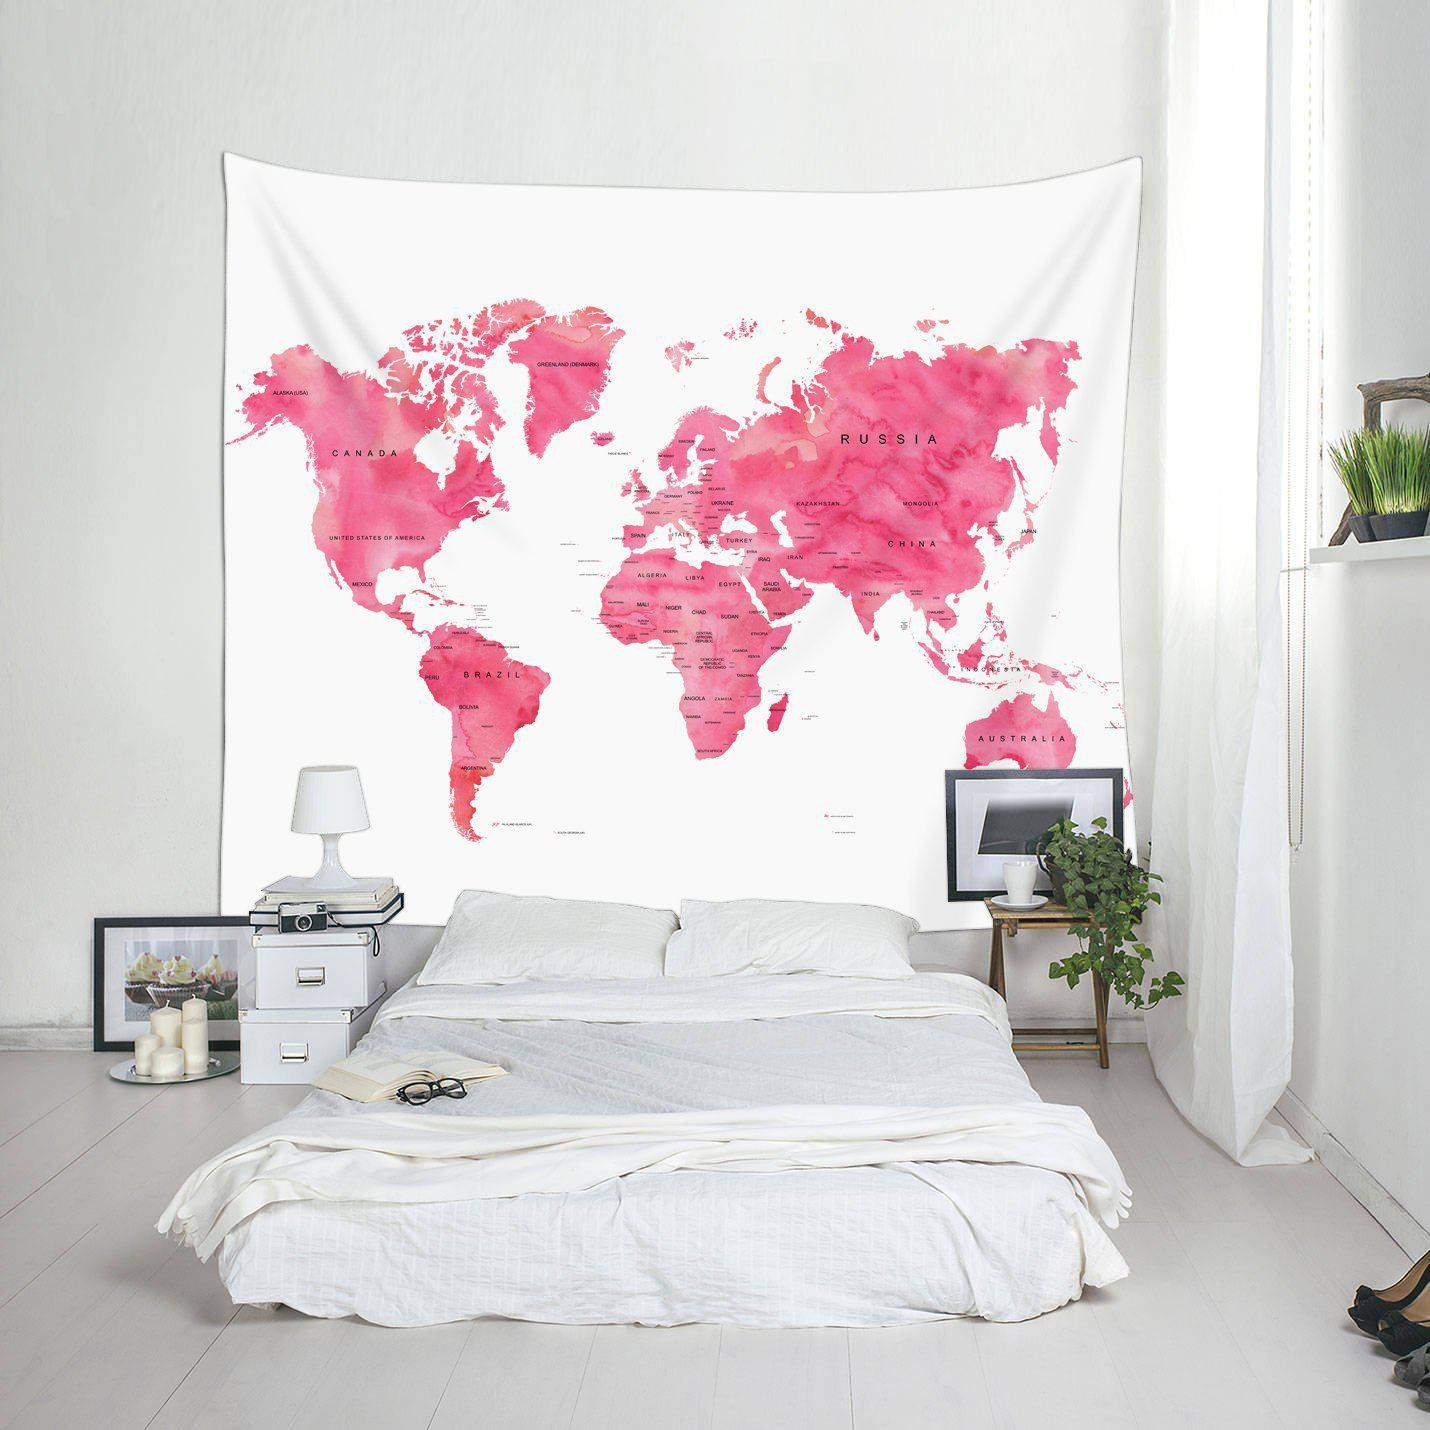 Pink world map fabric wall tapestry pink world map fabric wall tapestry gogetglam gumiabroncs Choice Image